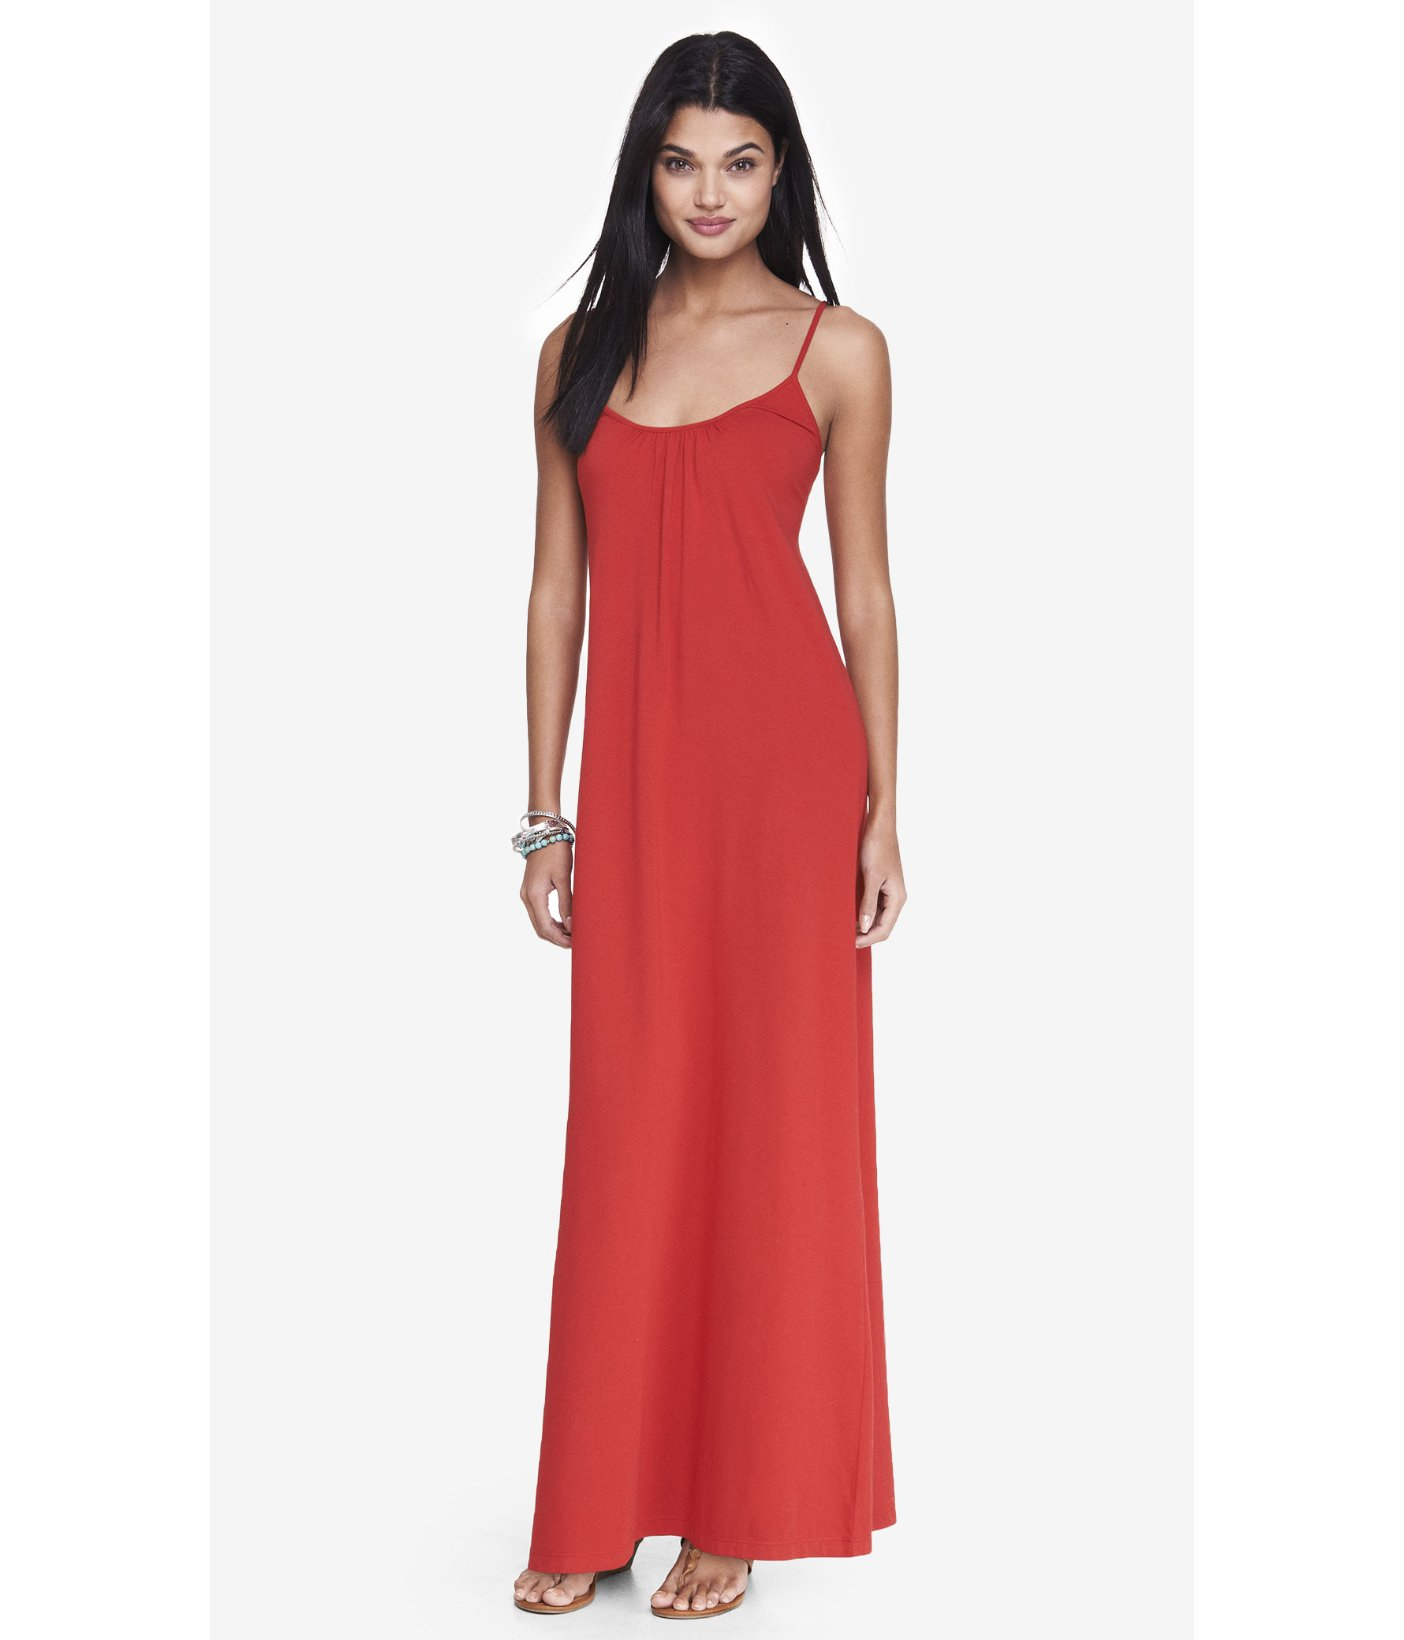 1eb68b643efaa Express Red Cut-Out Back Maxi Dress in Red - Lyst